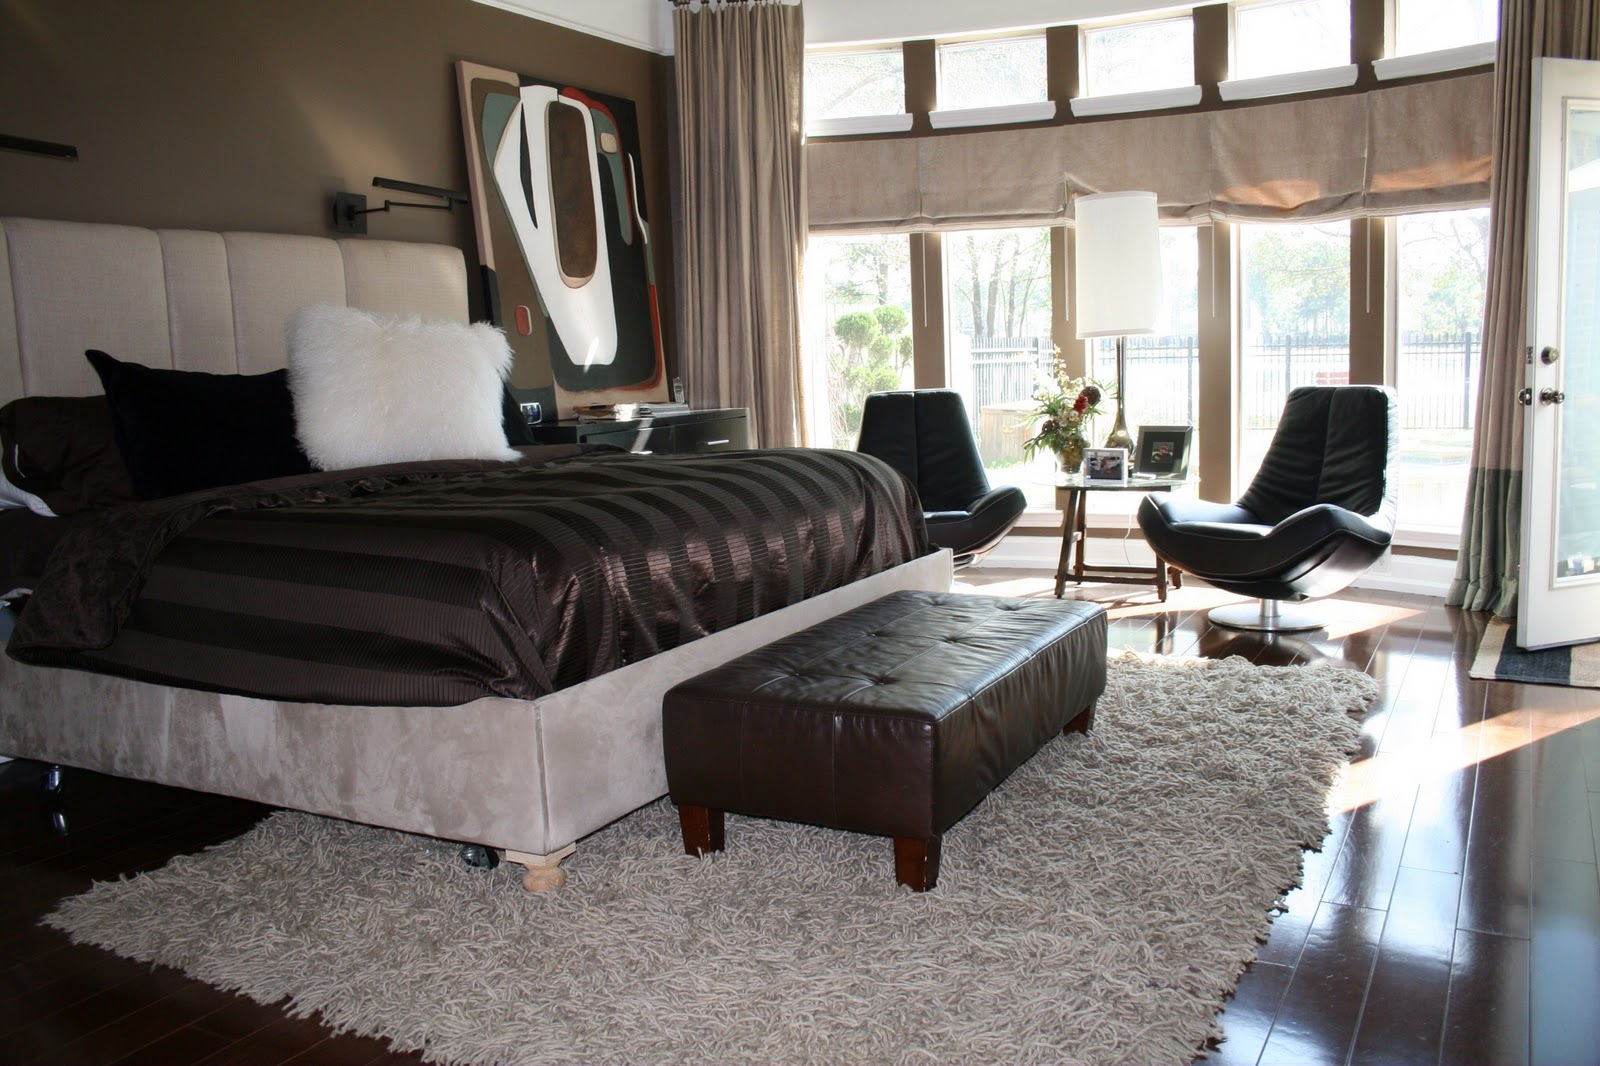 dwell in style found the shag rug you love but can 39 t find the right size. Black Bedroom Furniture Sets. Home Design Ideas